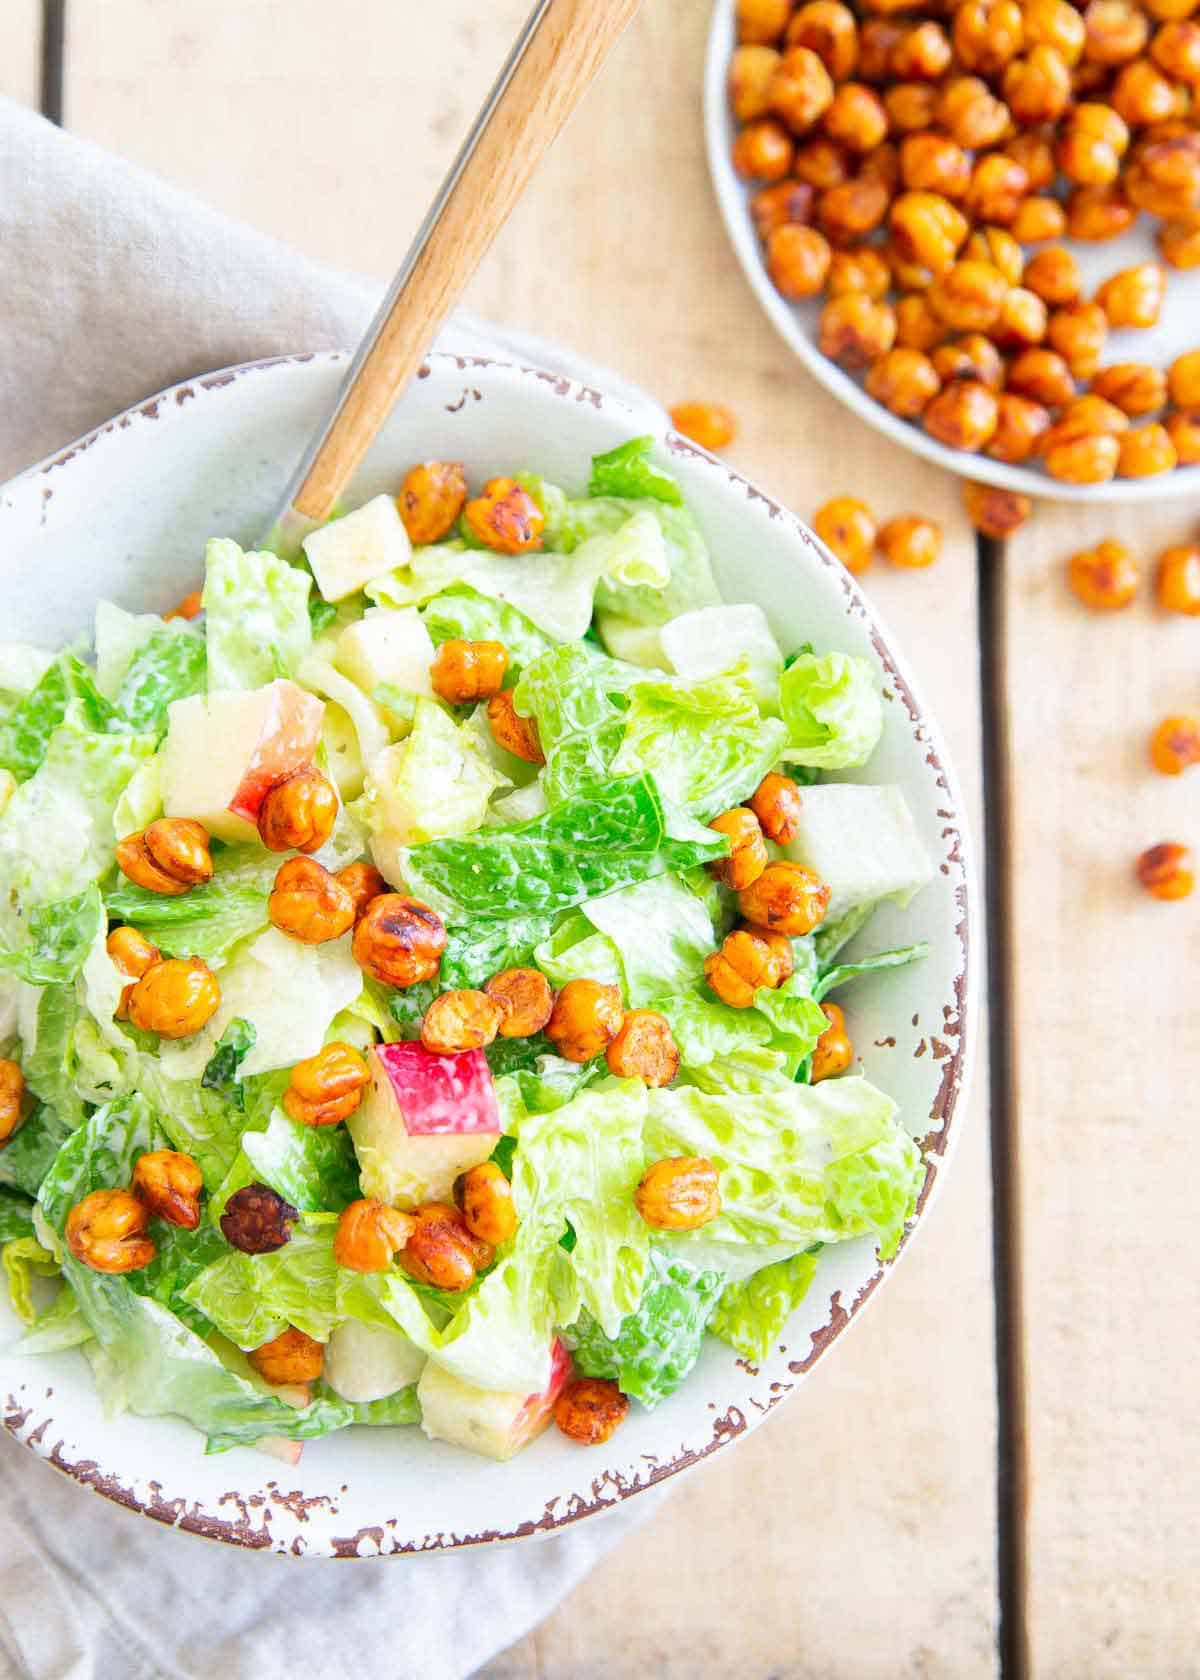 Try adding crunchy BBQ roasted chickpeas to your salad for a pop of flavor and texture in each bite.